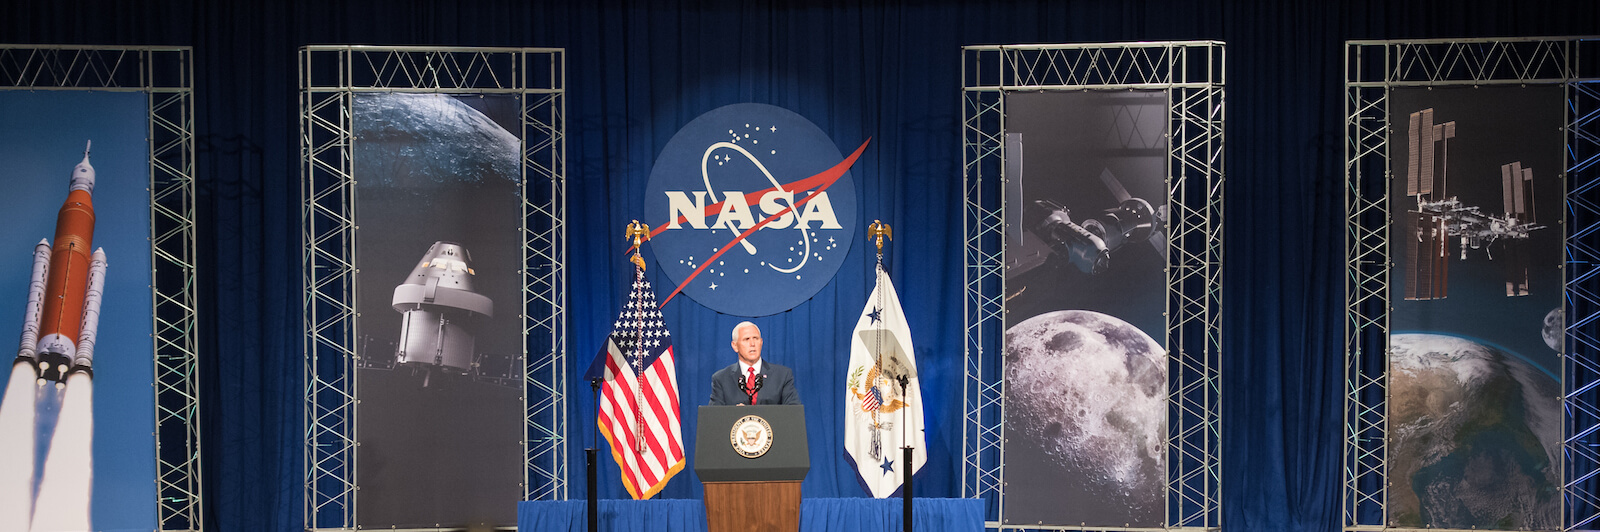 Vice President Mike Pence speaks at NASA's Johnson Space Center in Houston, Texas (Photo: NASA/Joel Kowsky)